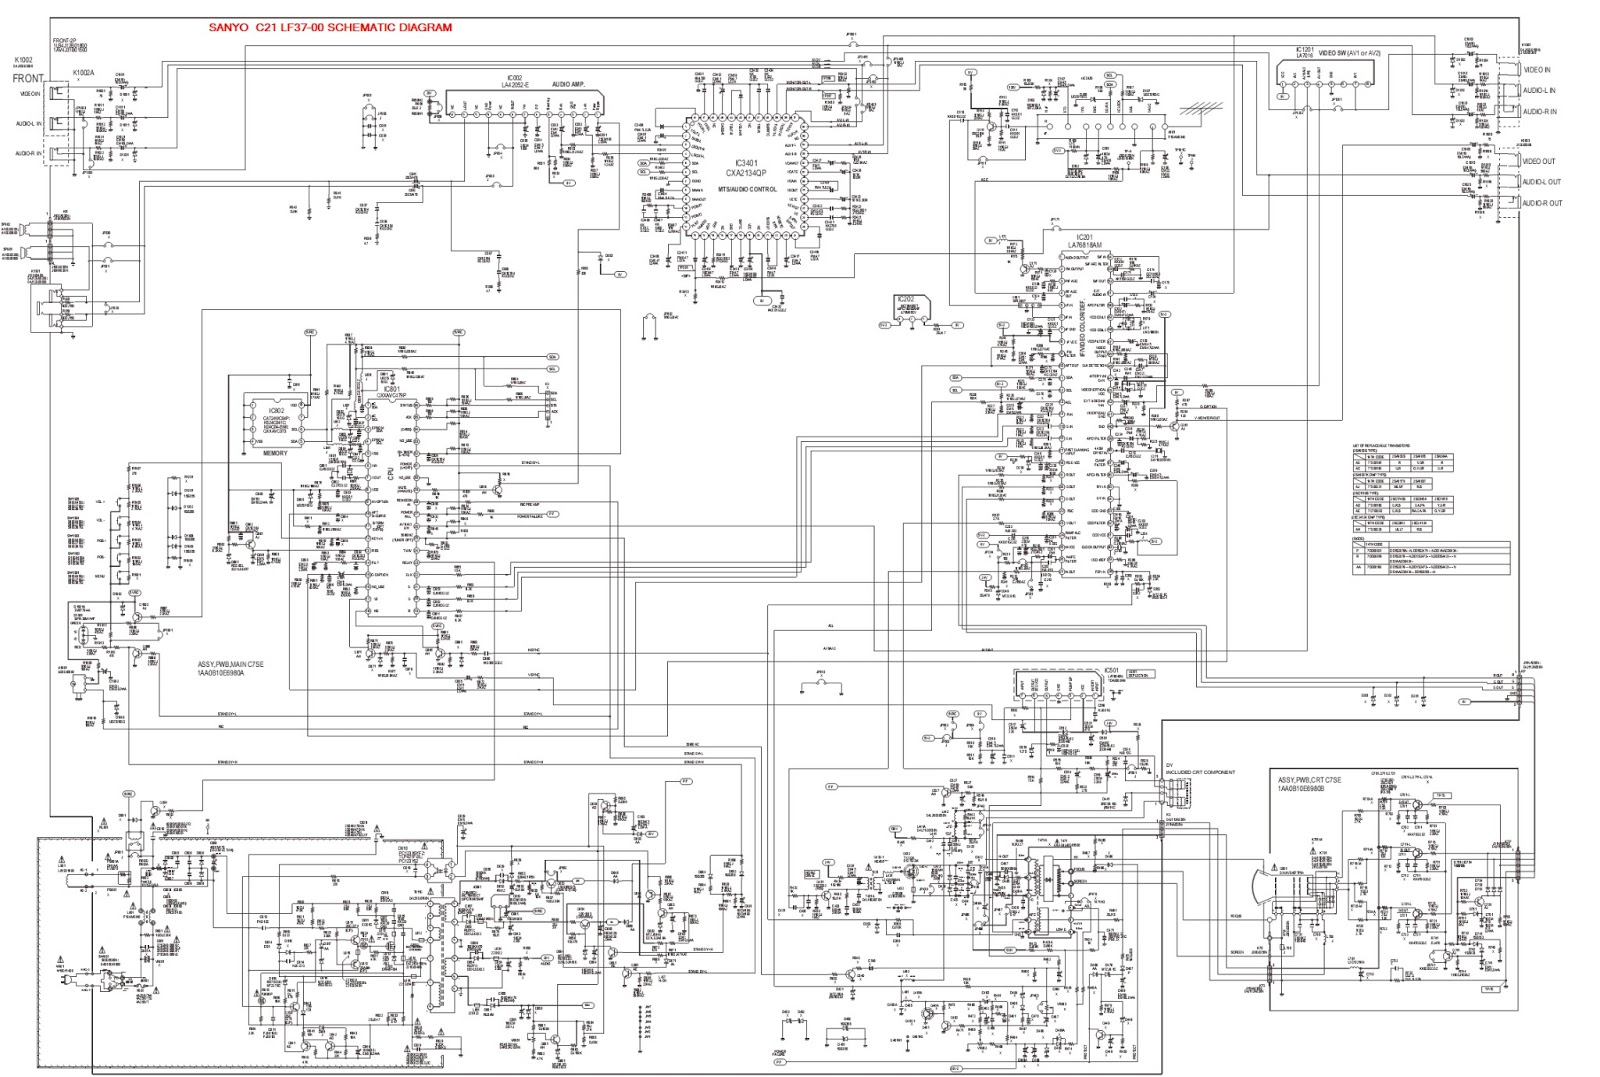 sanyo tv circuit diagram wiring diagram third levelsanyo c21lf37 ctv schematic diagram circuit diagram  [ 1600 x 1077 Pixel ]